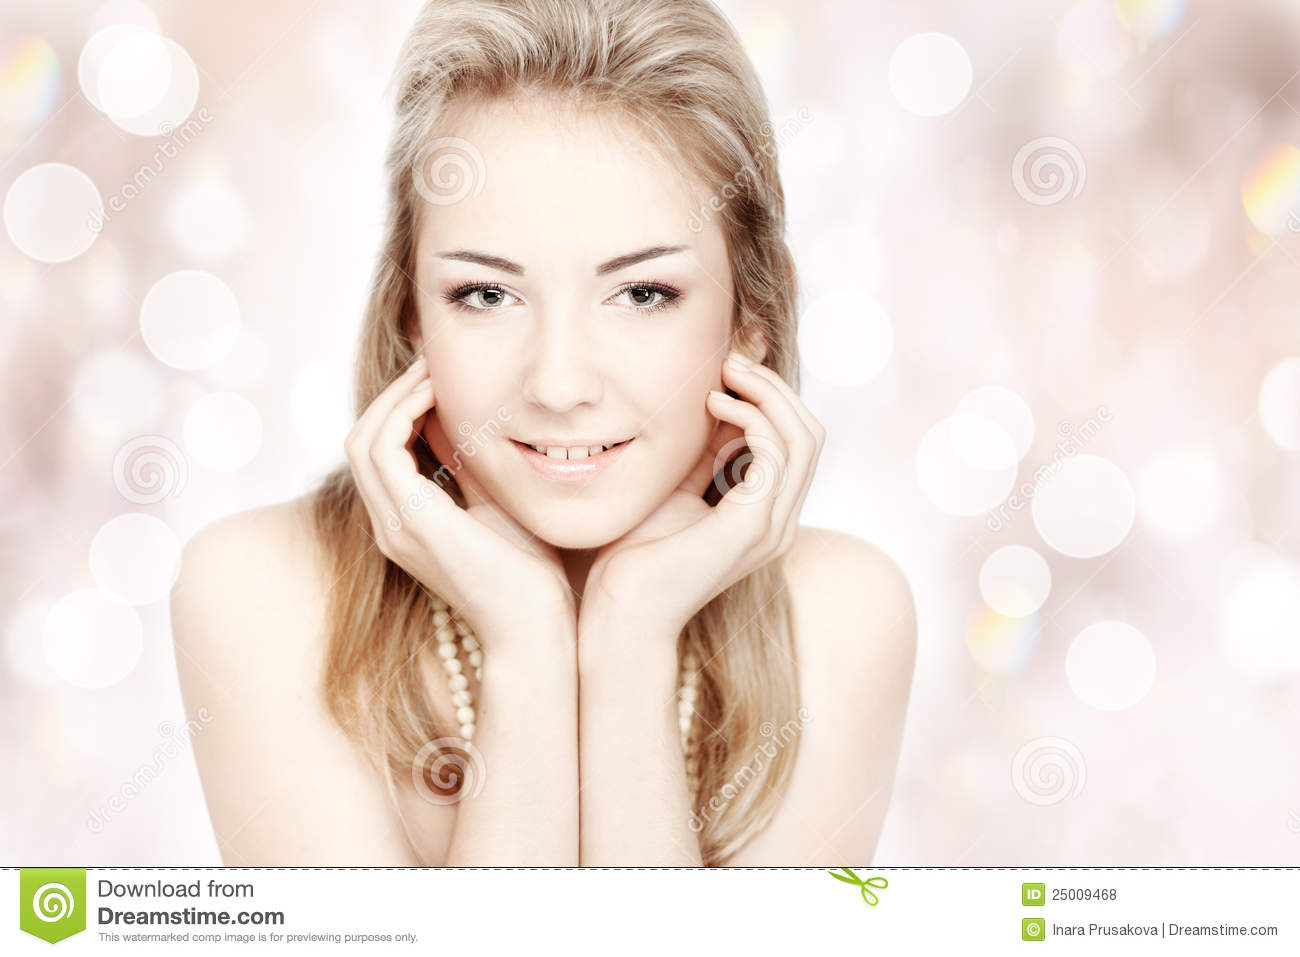 Beautiful young woman. Portrait over abstract